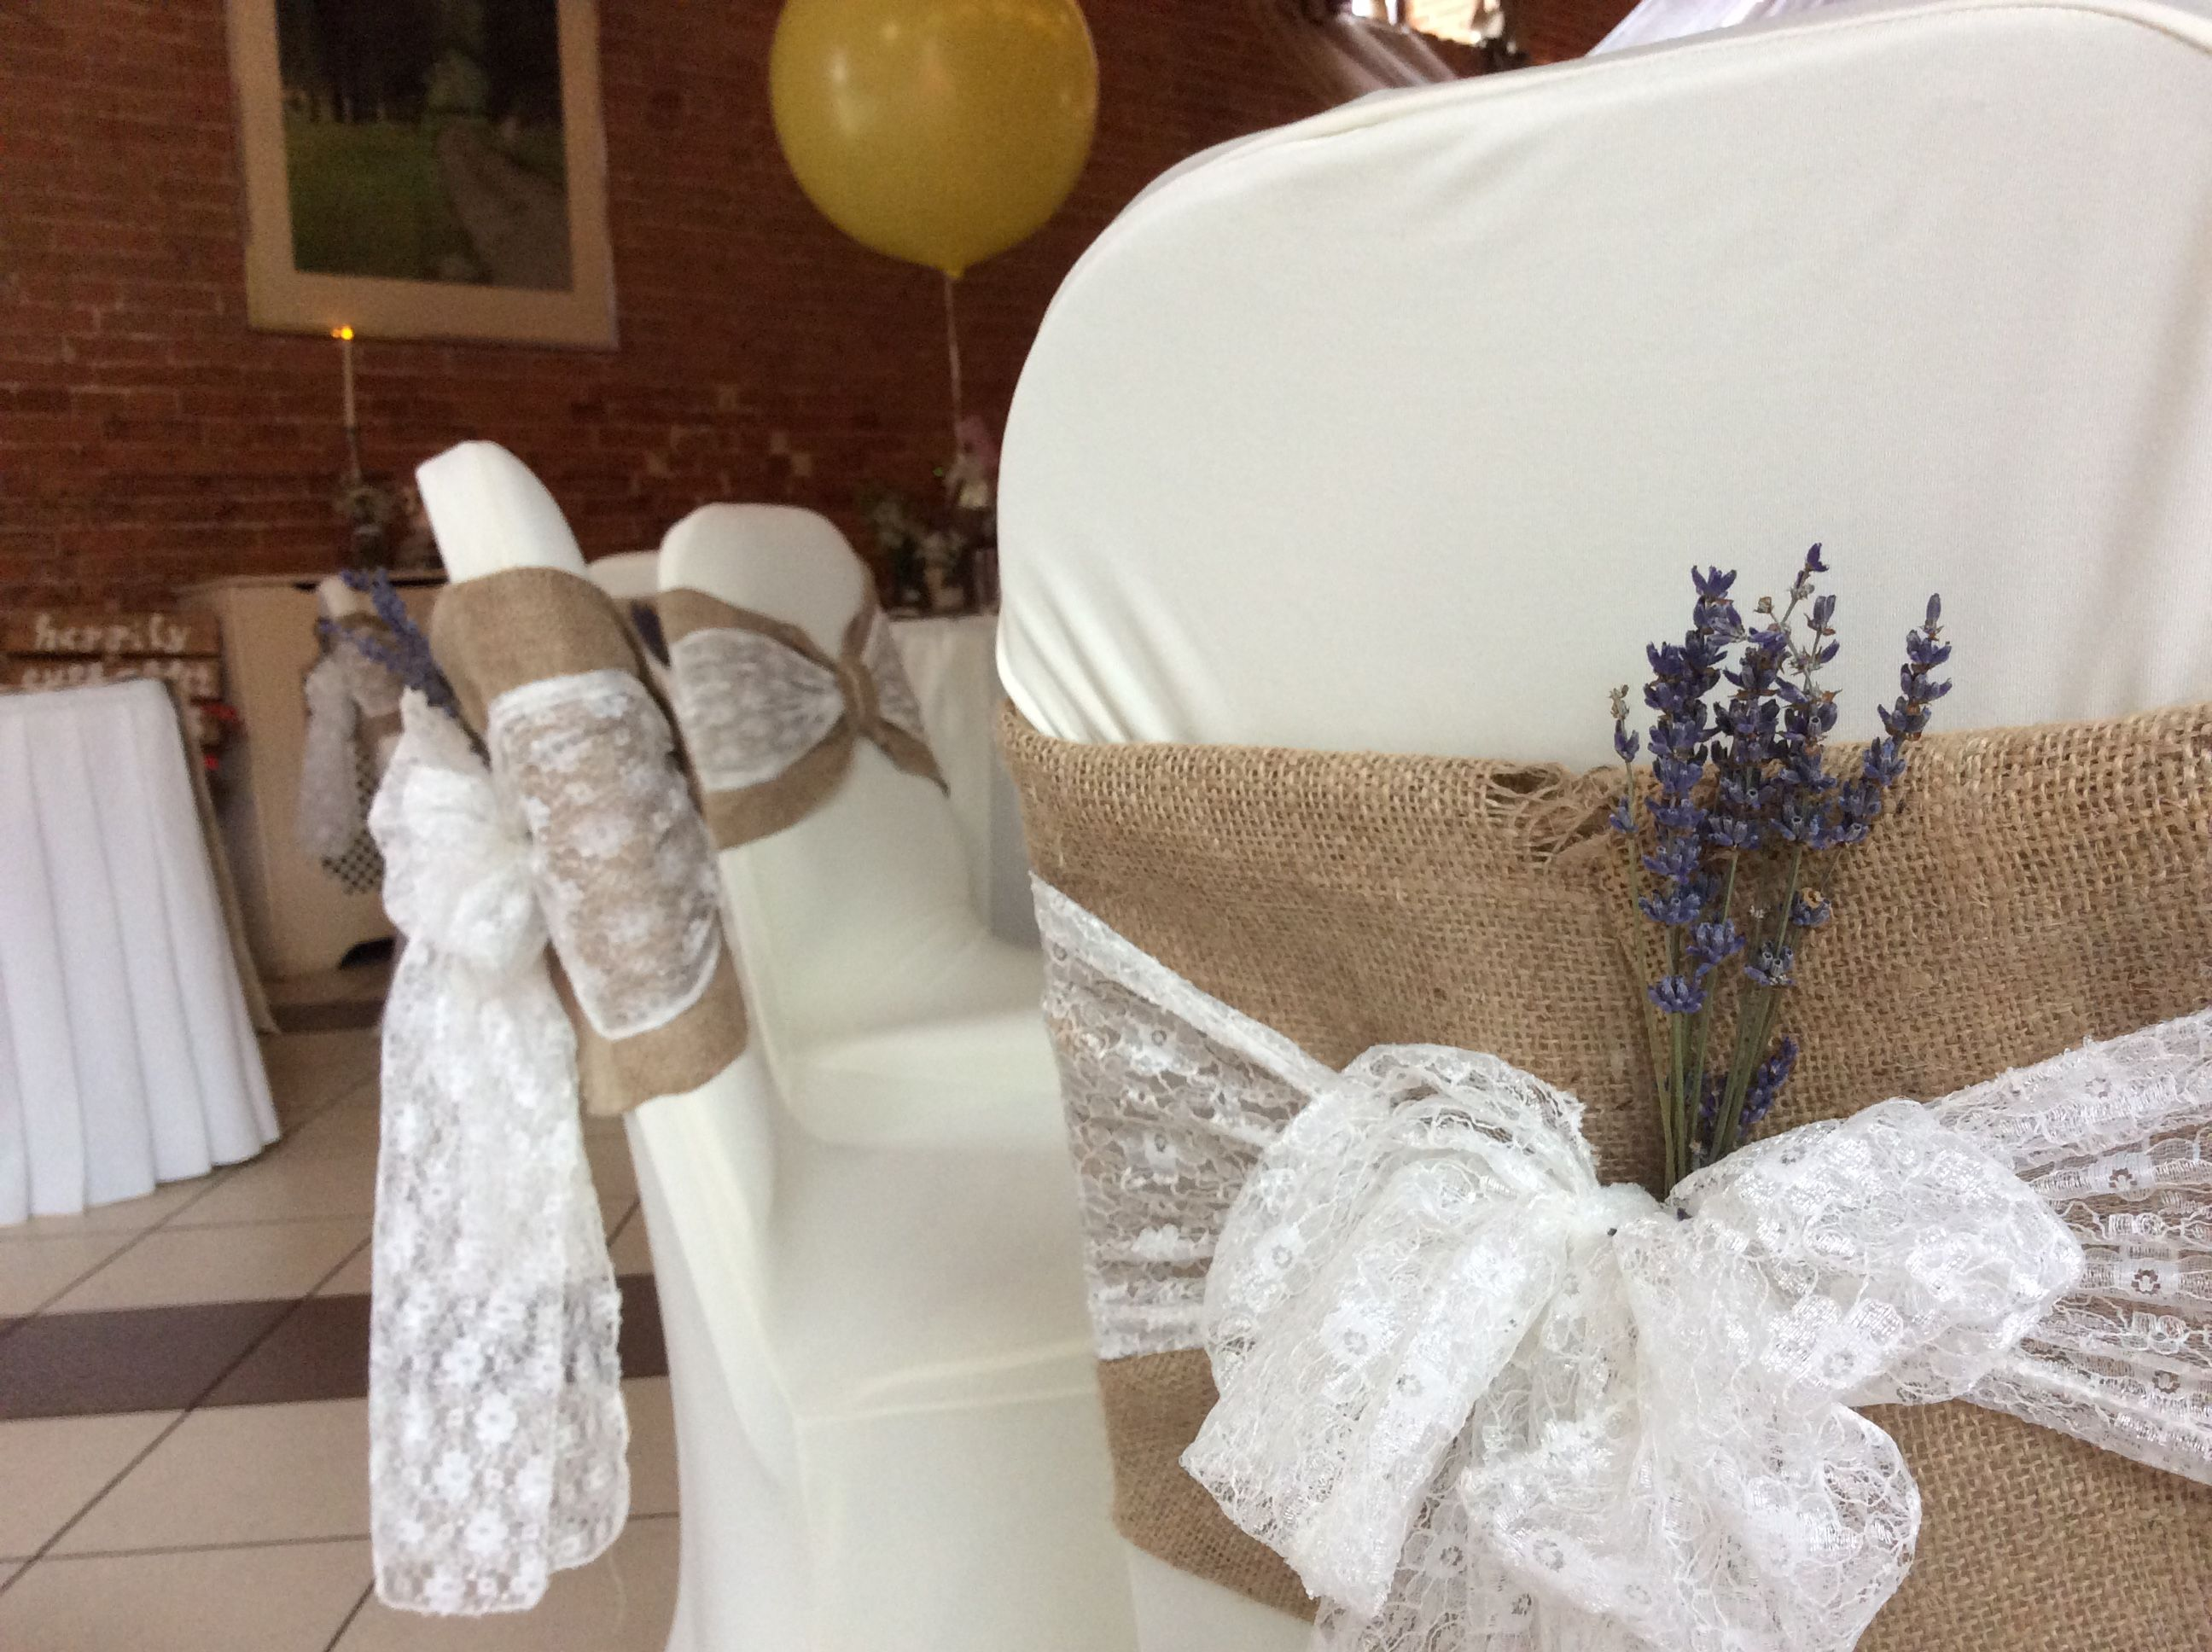 Rustic hessian chair covers with a delicate lace sash and a sprig